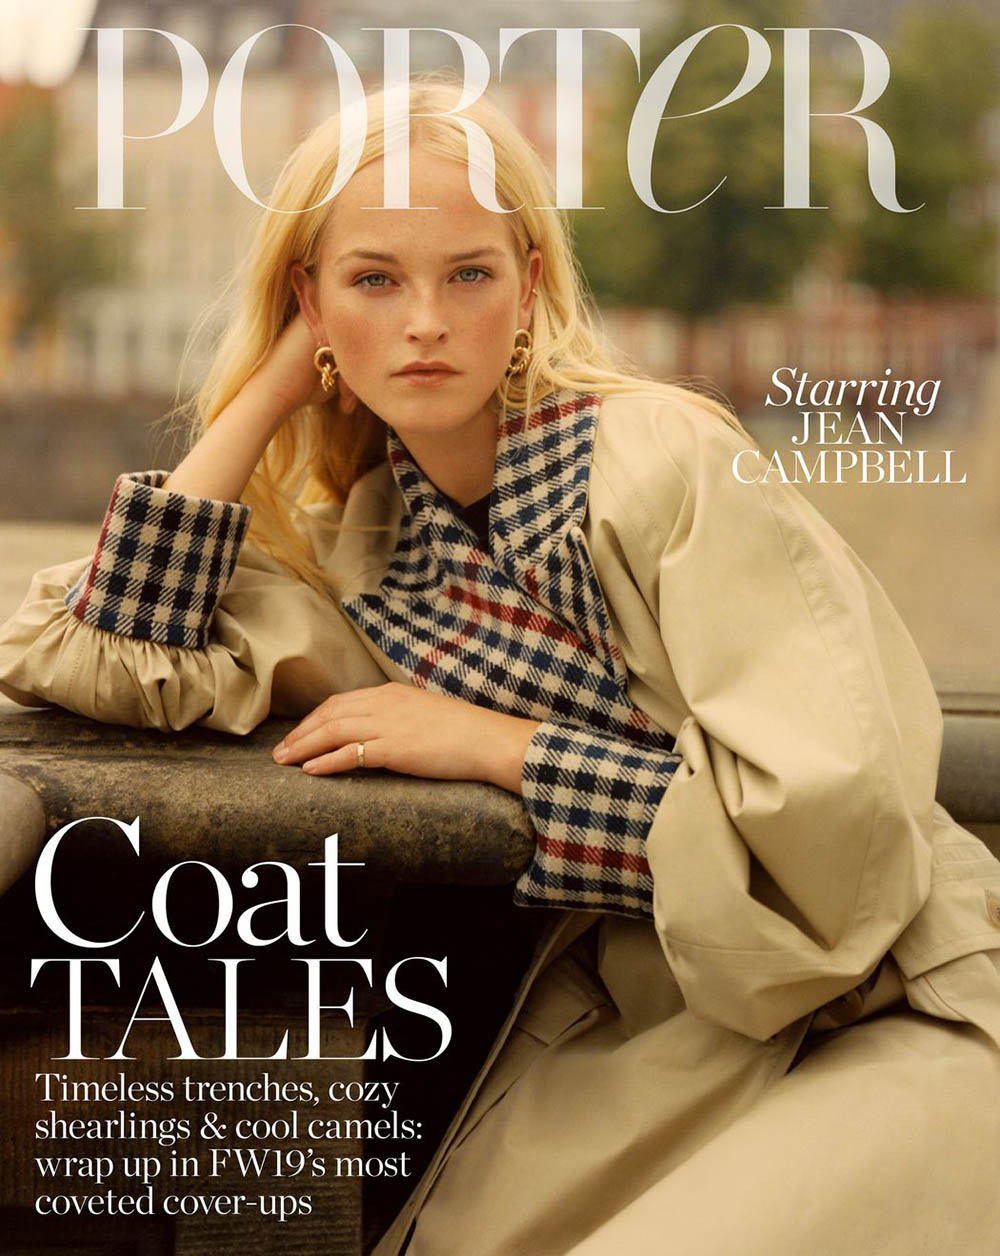 Jean Campbell covers Porter Edit September 27th, 2019 by Quentin De Briey